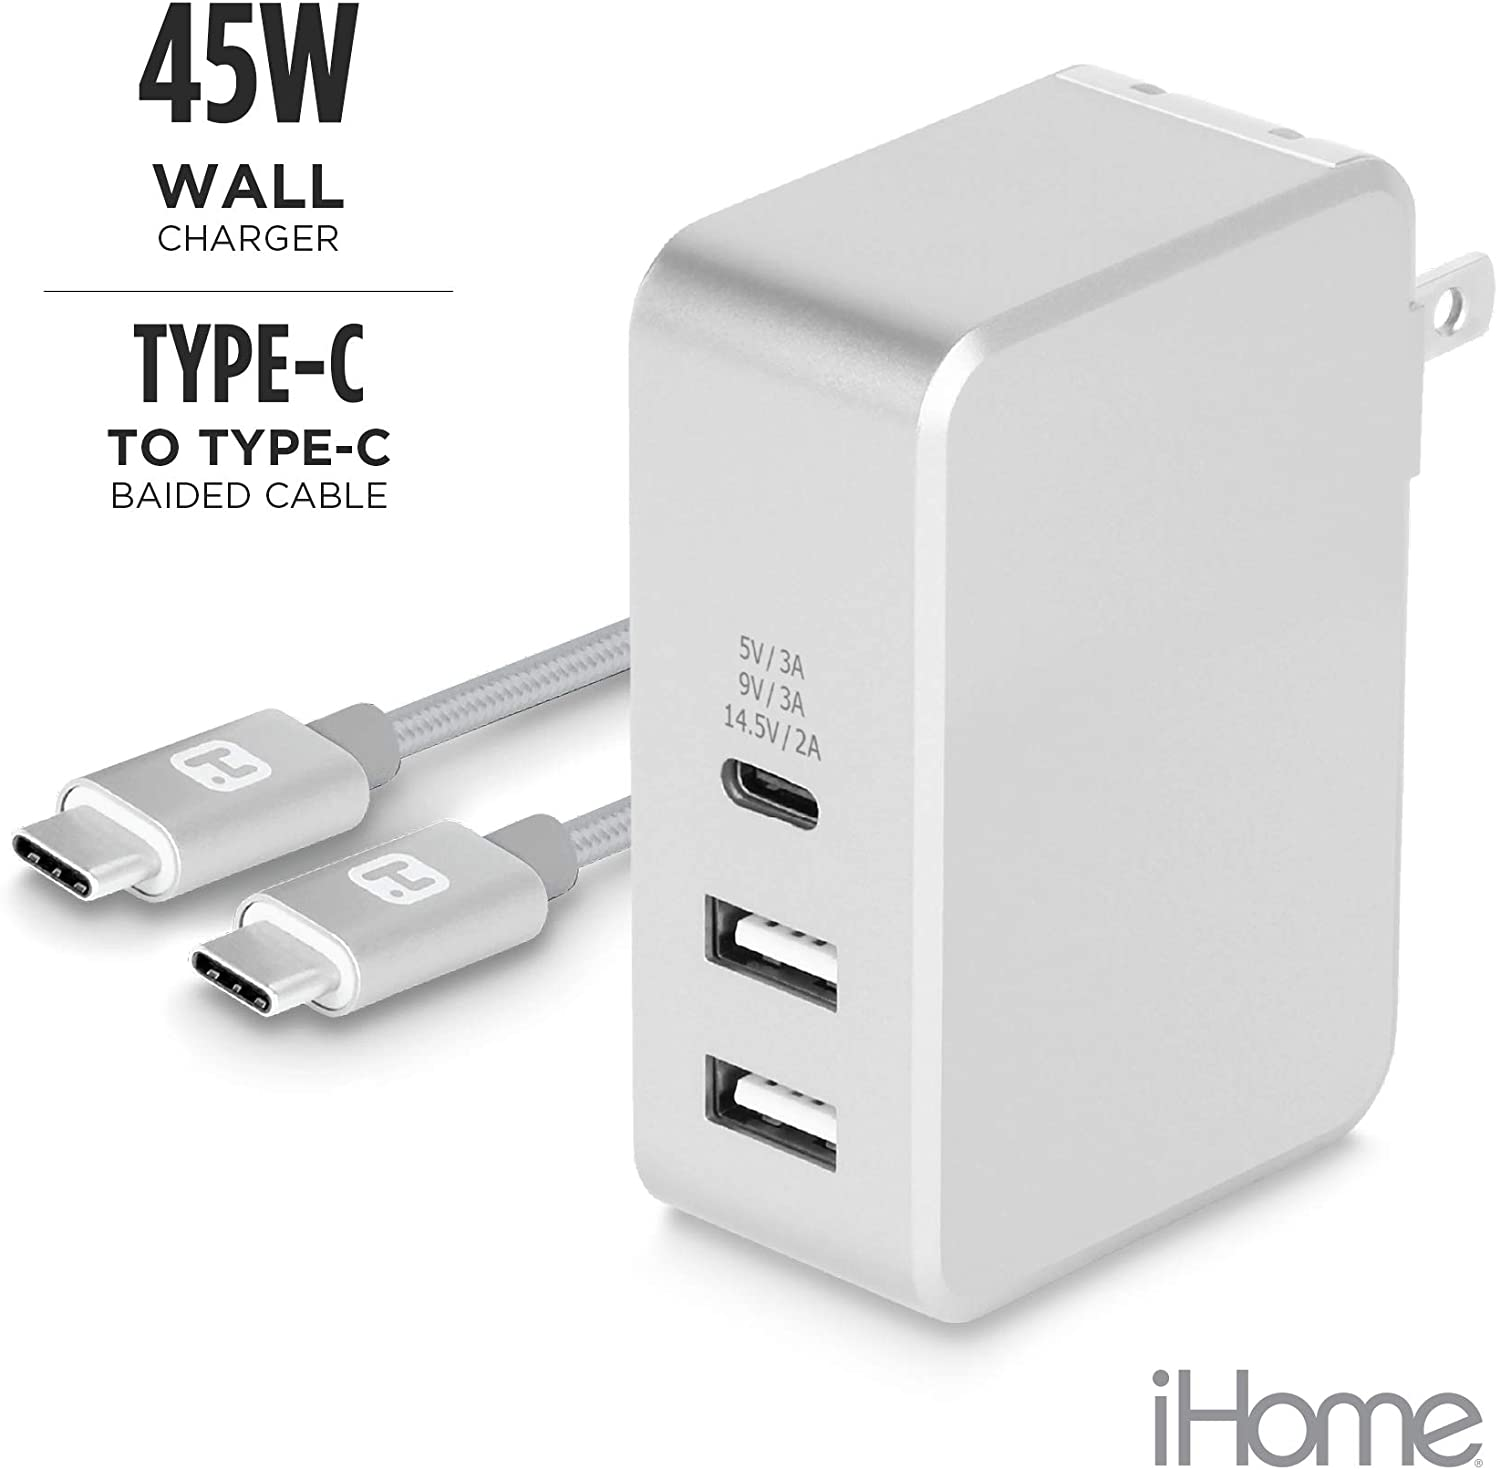 iHome USB Type-C 3-Port 45W Rapid Portable Wall Charger. Power Delivery Port for Apple MacBook, iPhone X/ 8/8 Plus, Nintendo Switch & More. Includes 6Ft USB-C Braided Cable -Silver